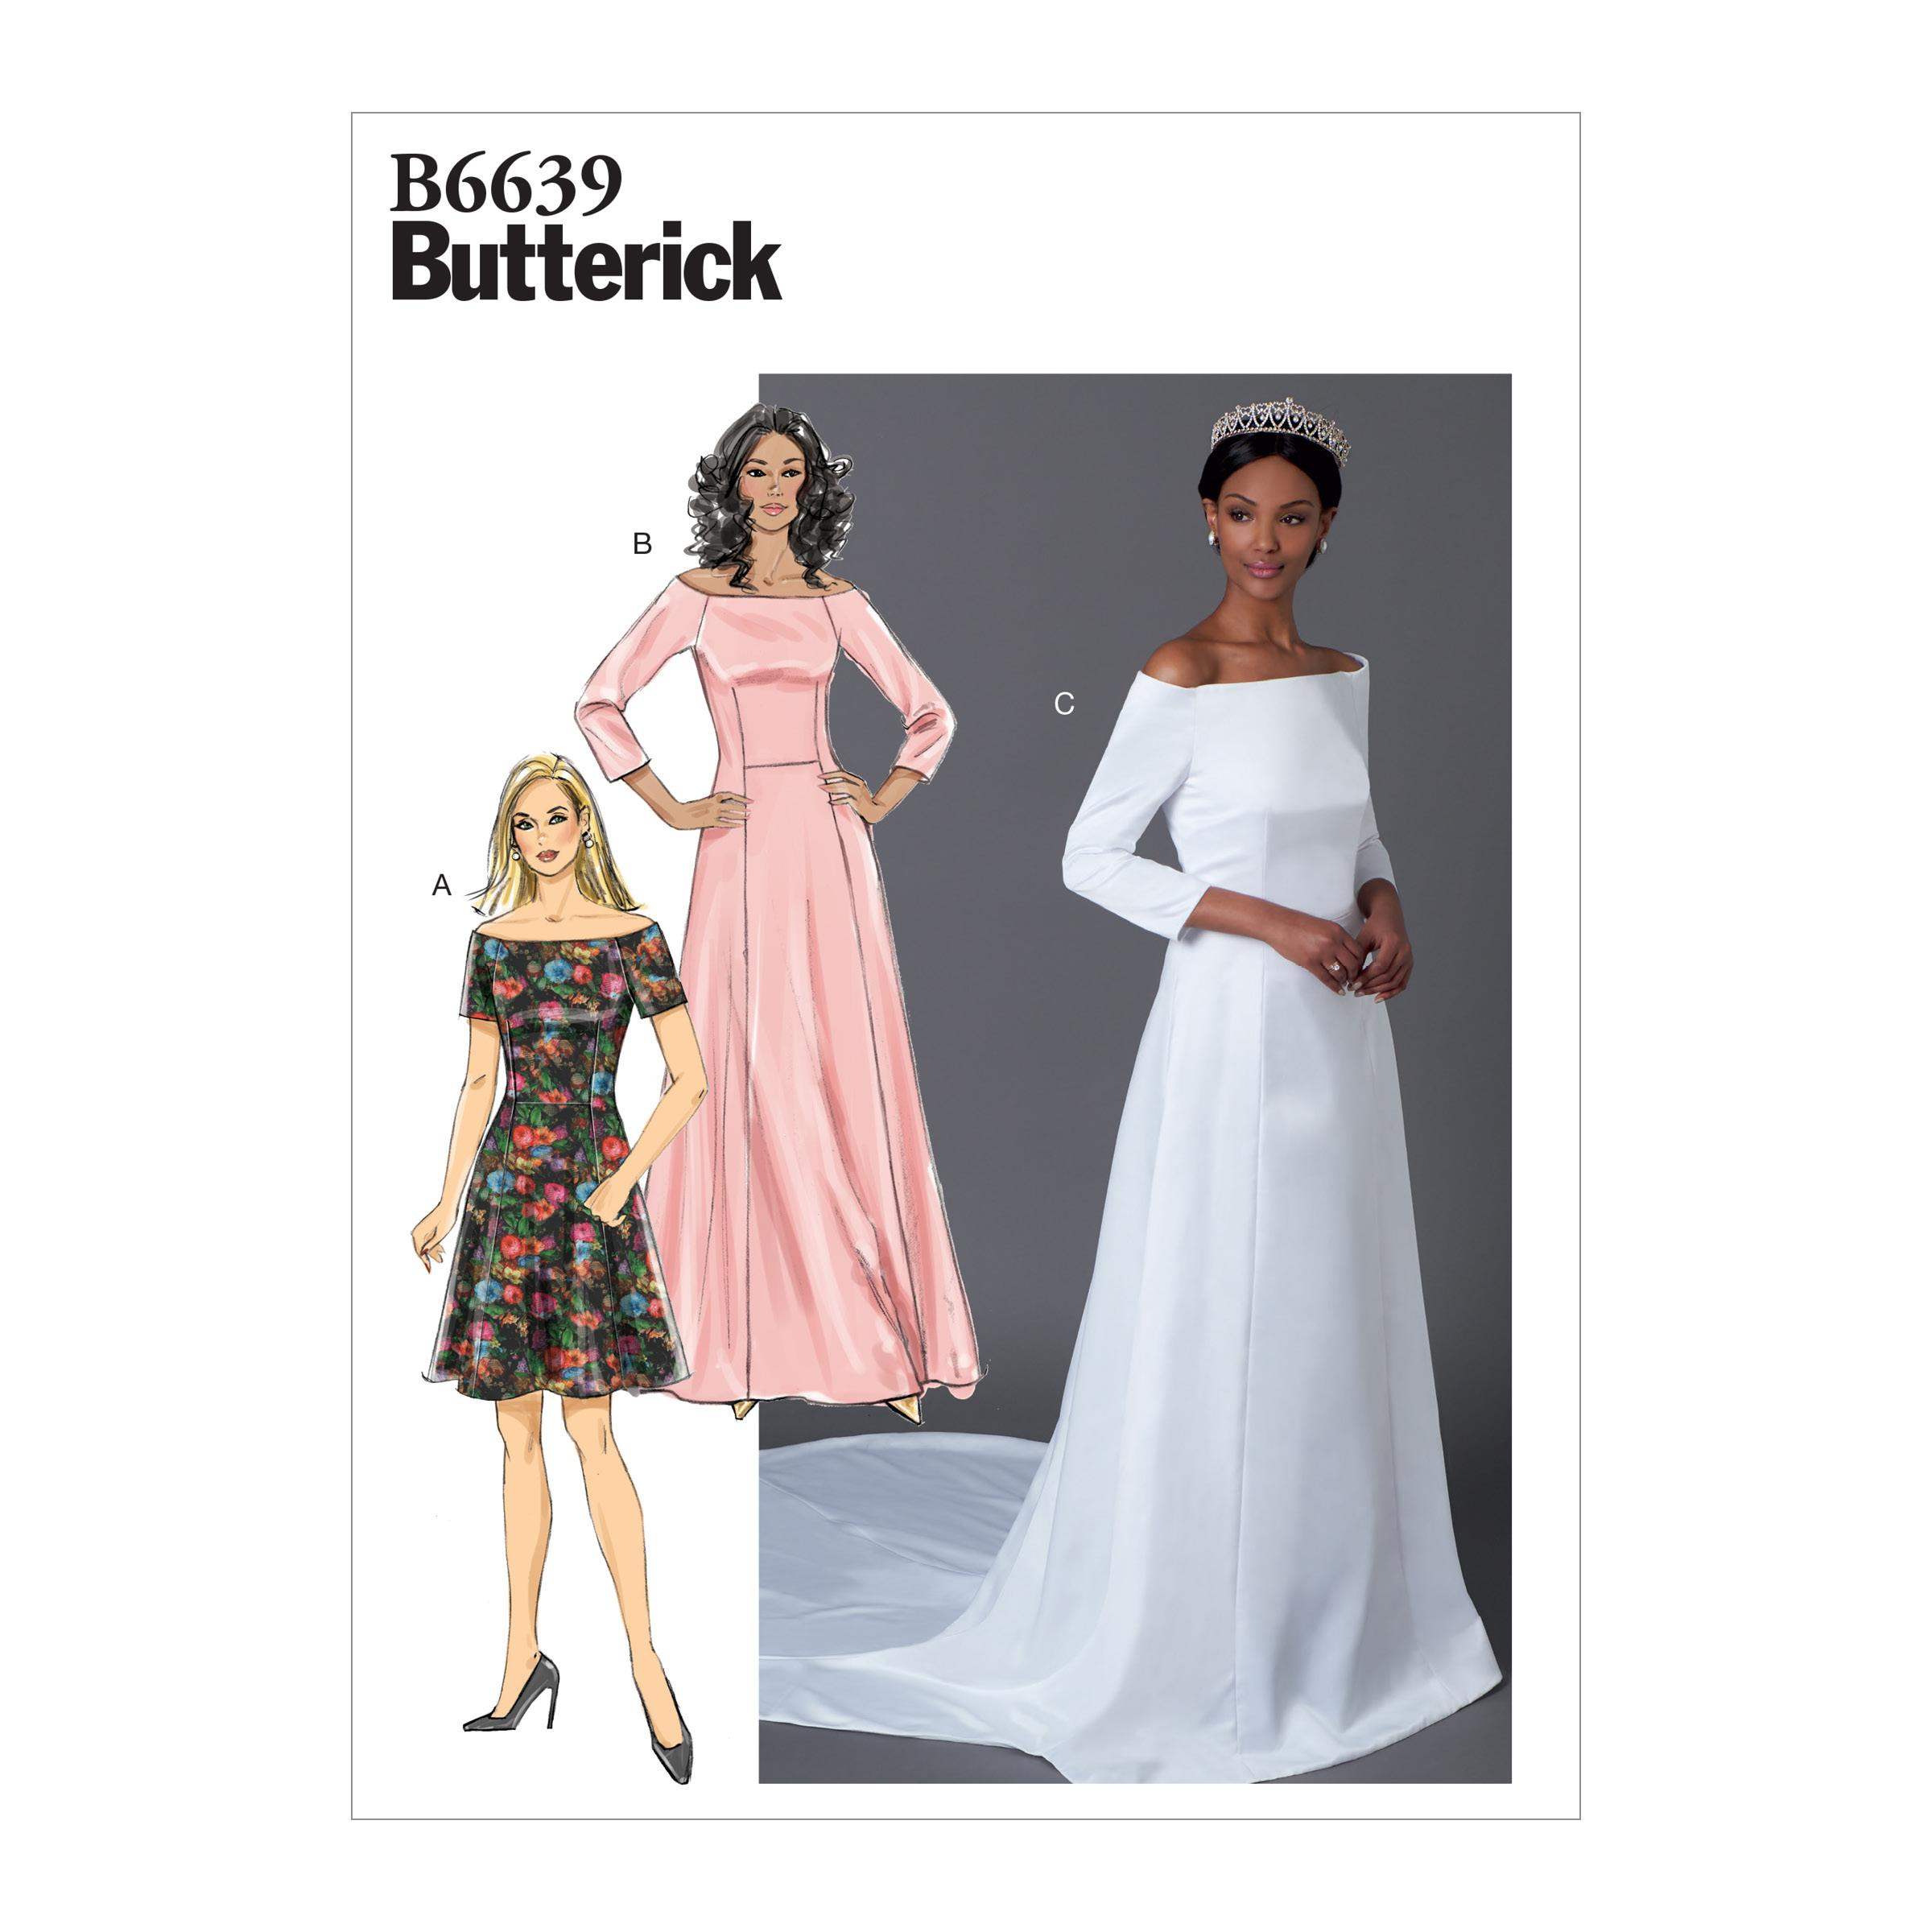 Butterick B6639 Misses' Dress